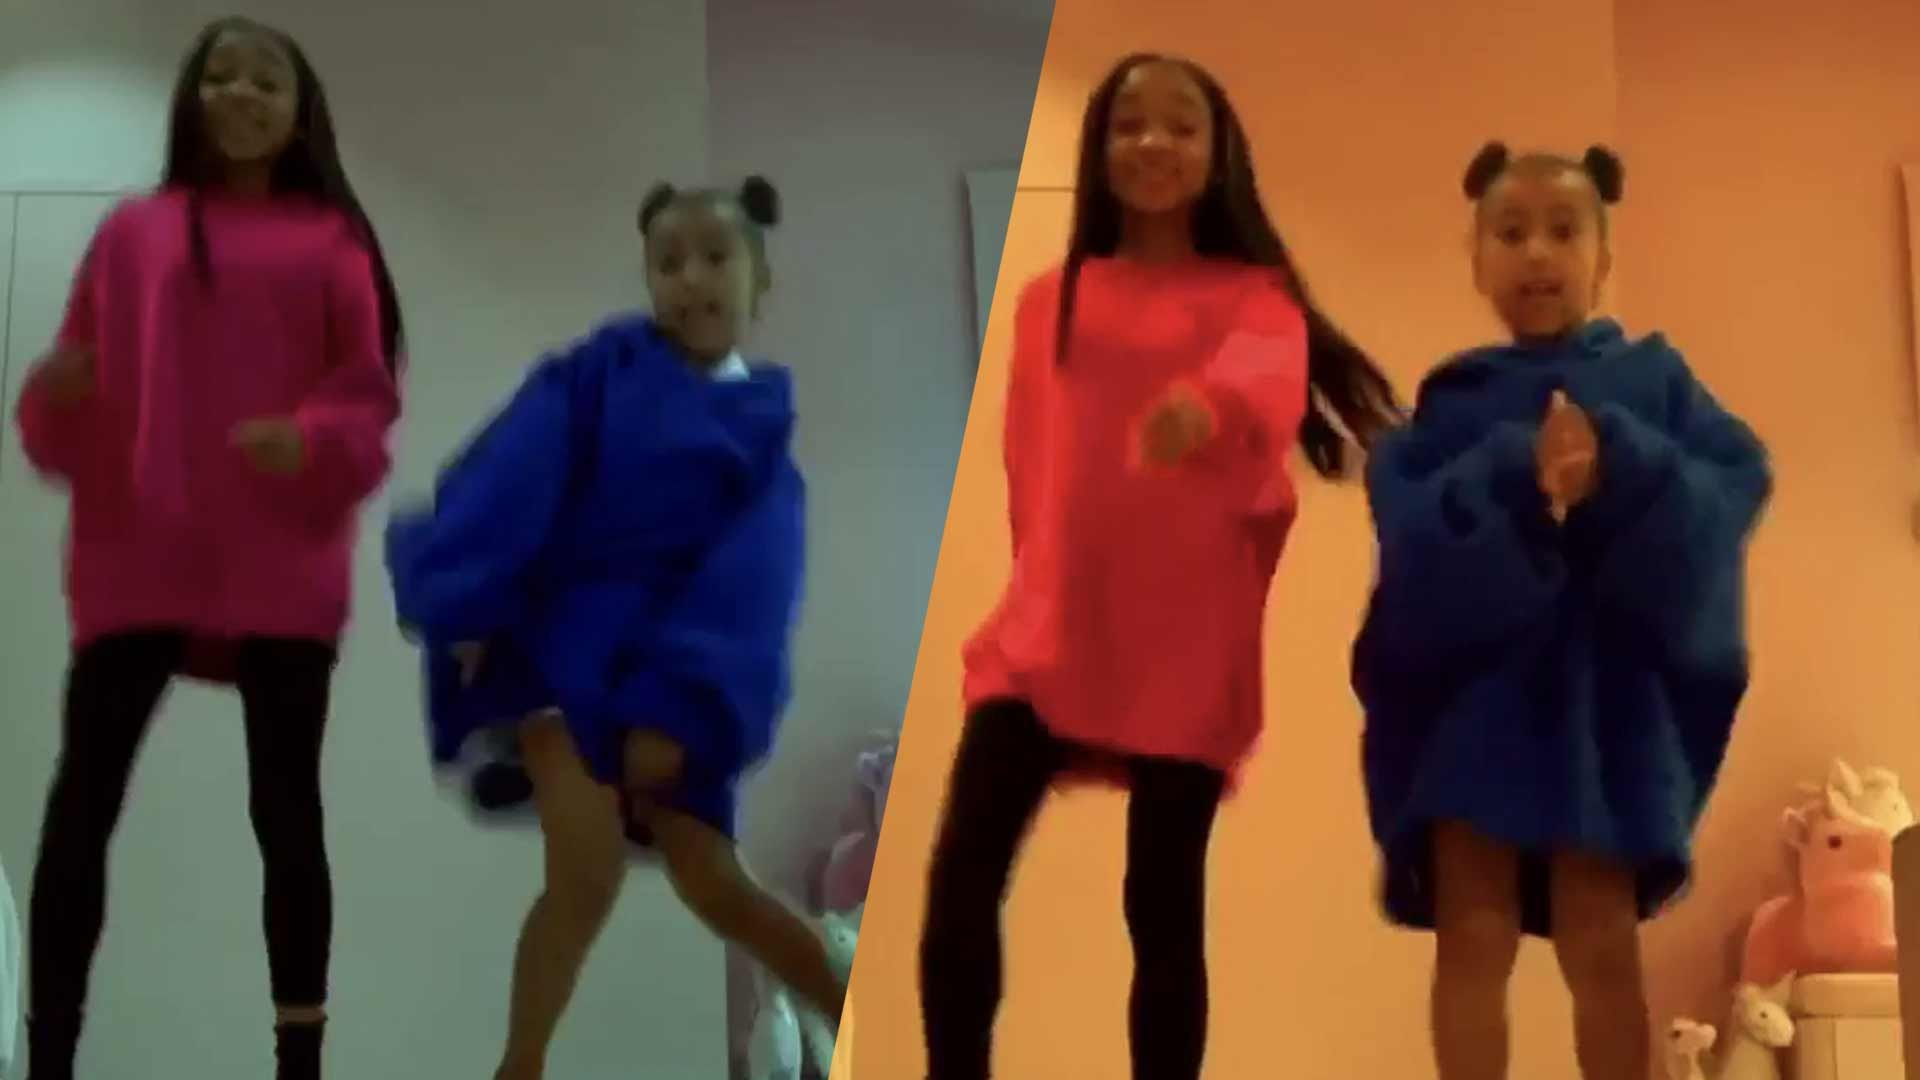 North West Stars In Awesome Tiktok Video With Kid Rapper That Girl